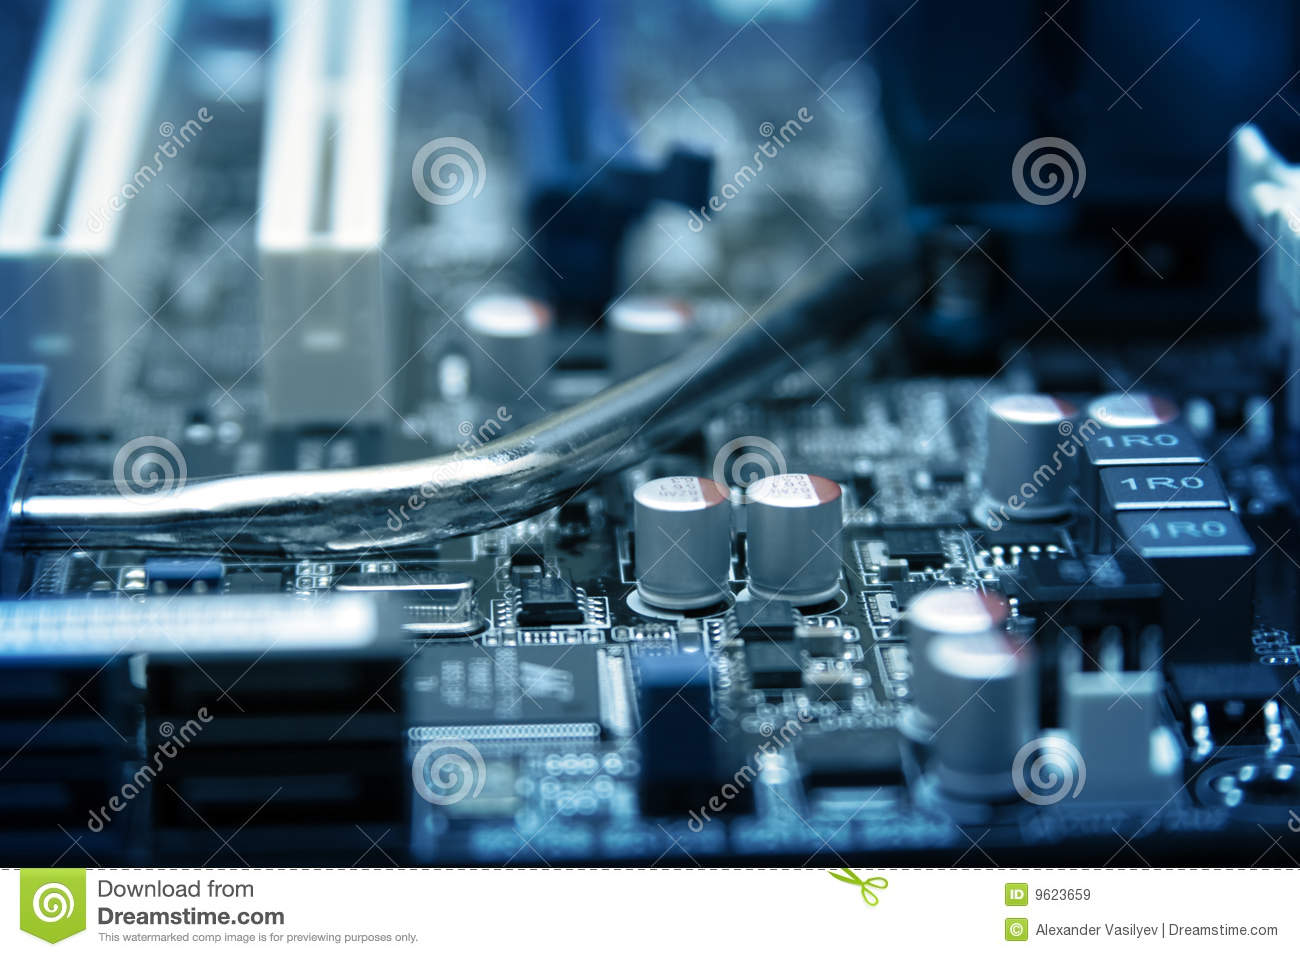 computer circuit board stock image image of hardware 9623659 rh dreamstime com Parallel and Series Circuits Electric Current